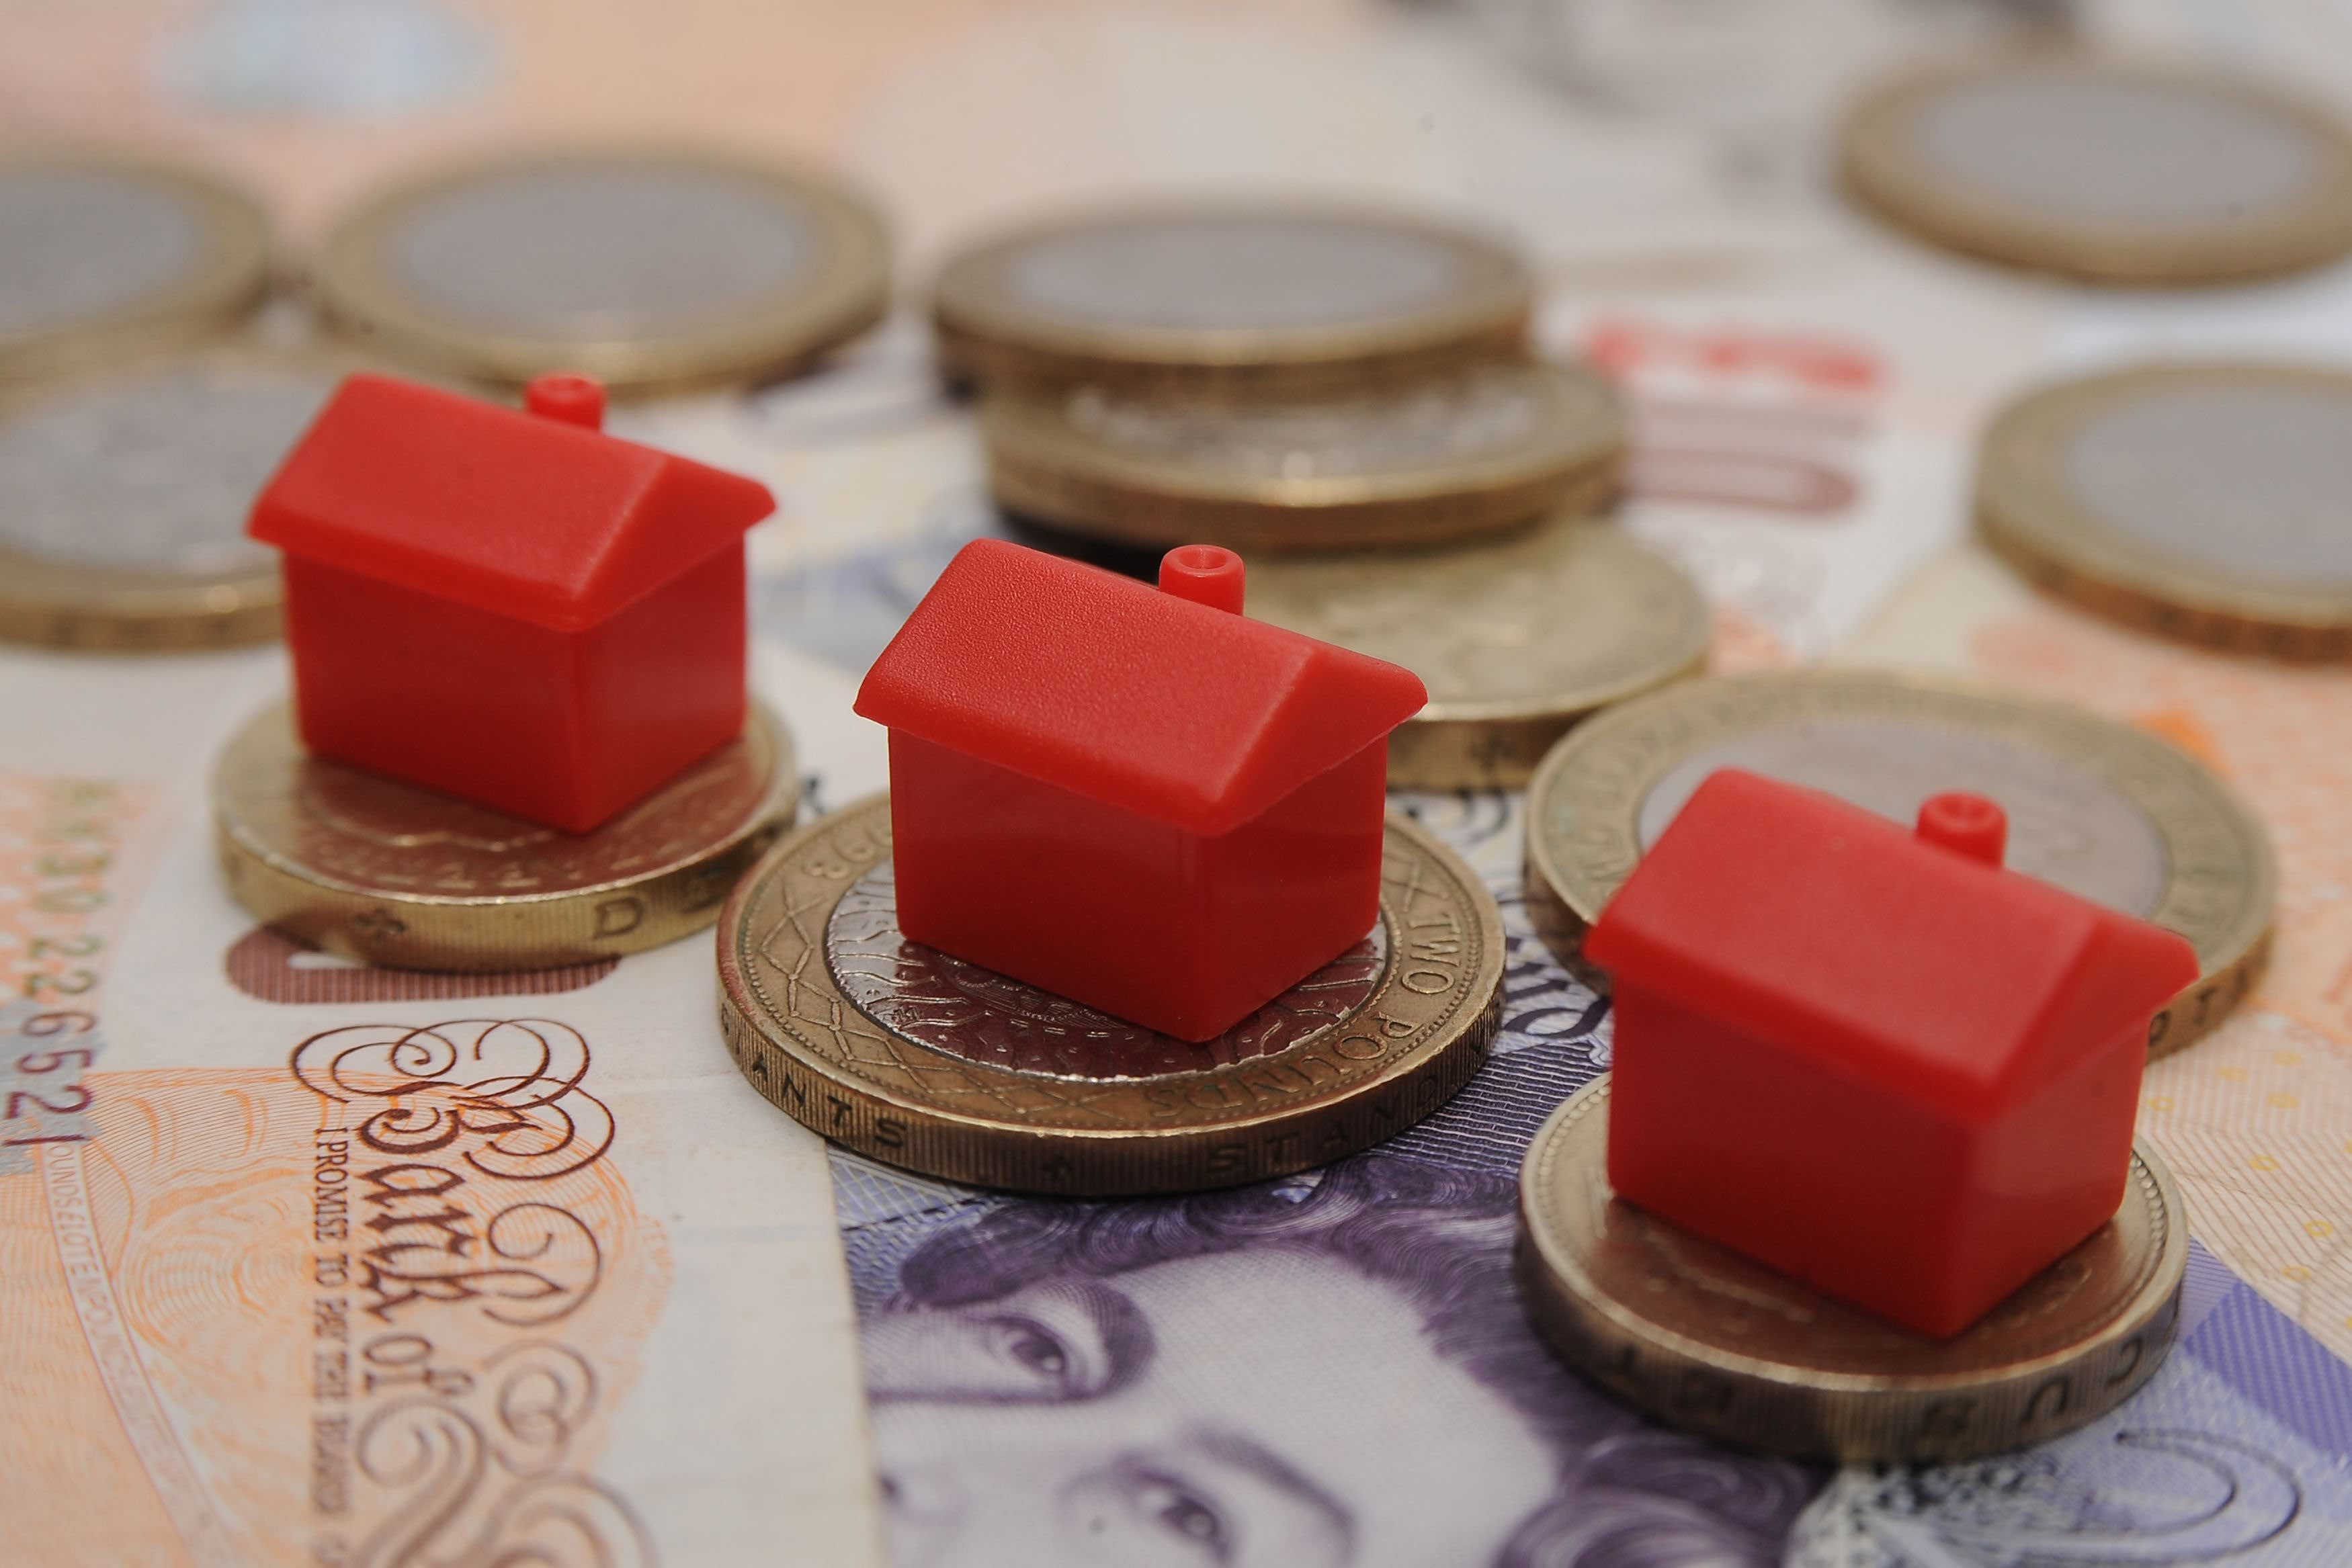 High LTV borrowing costs rise 'substantially'